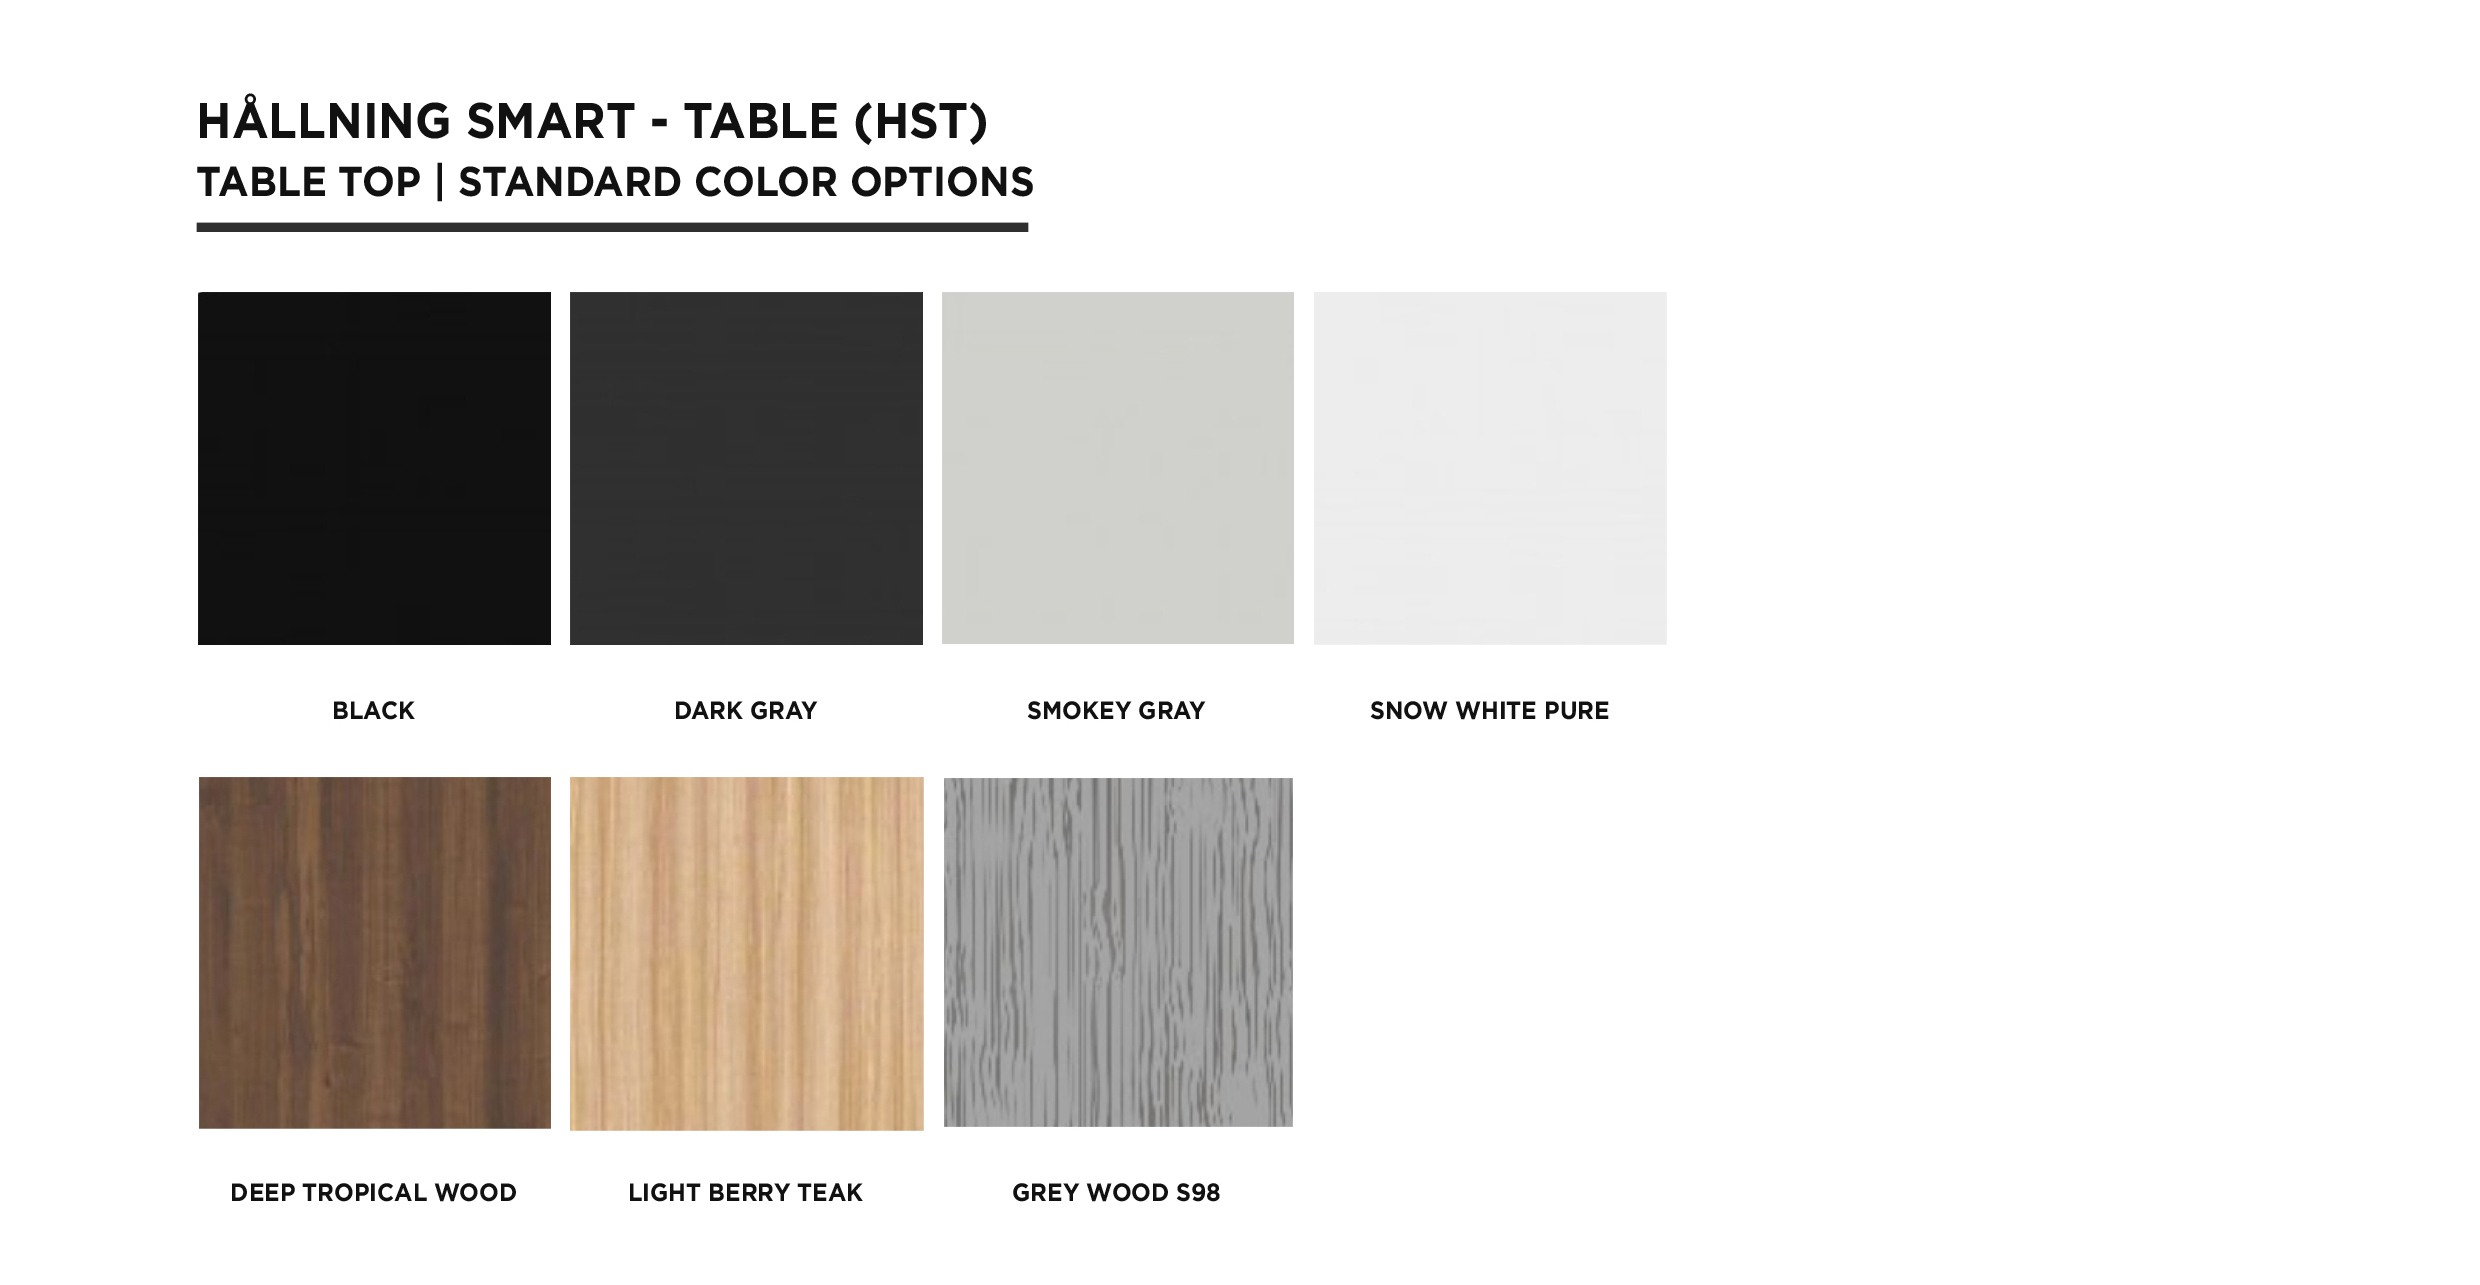 HALLNING - HST COLOR CHART